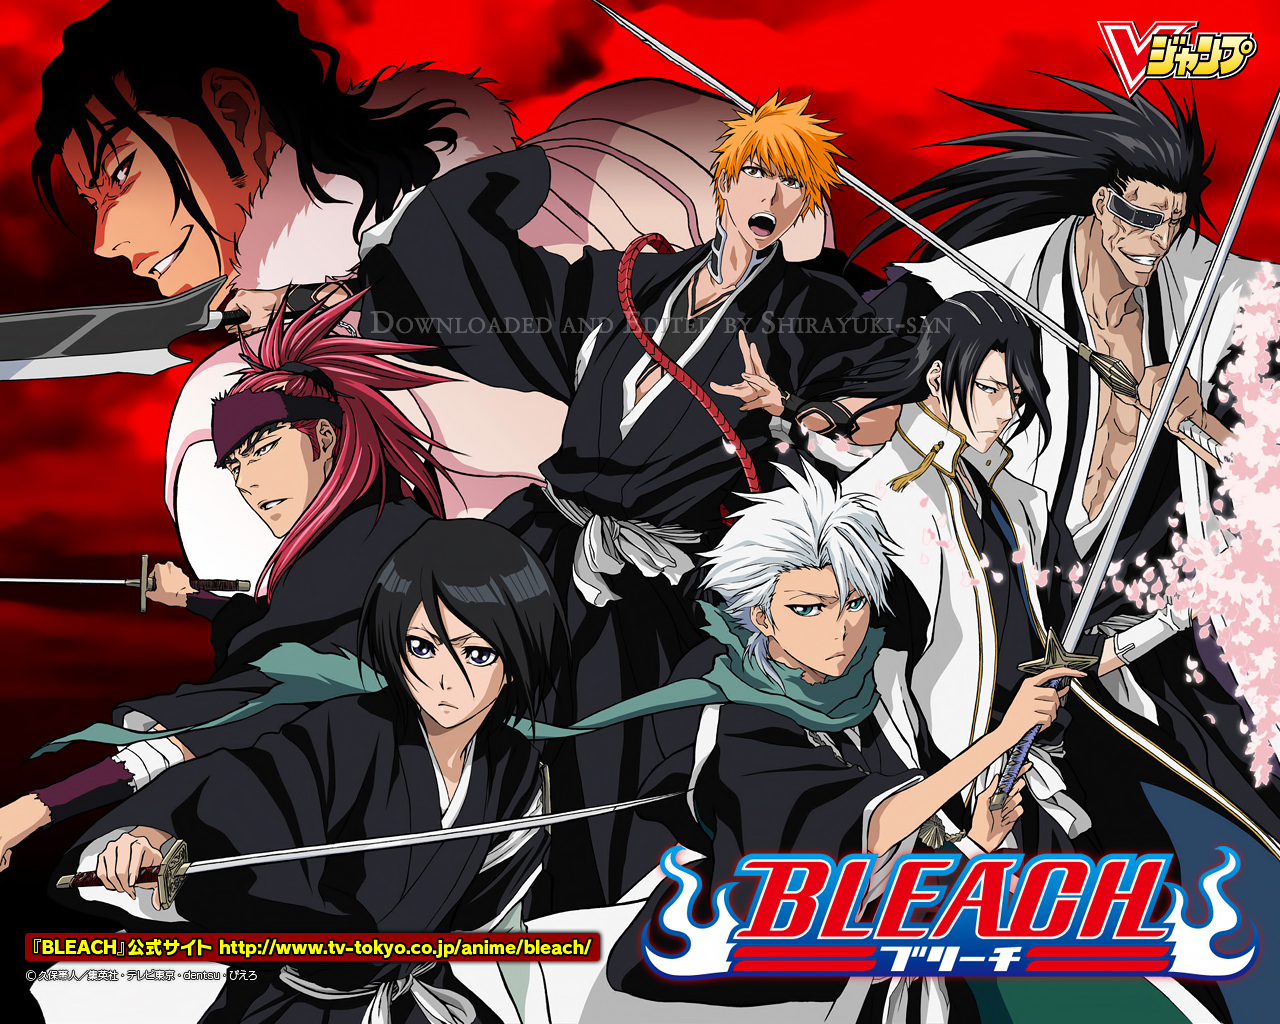 bleach wallpaper New Bleach Anime Full HD Wallpaper  Just